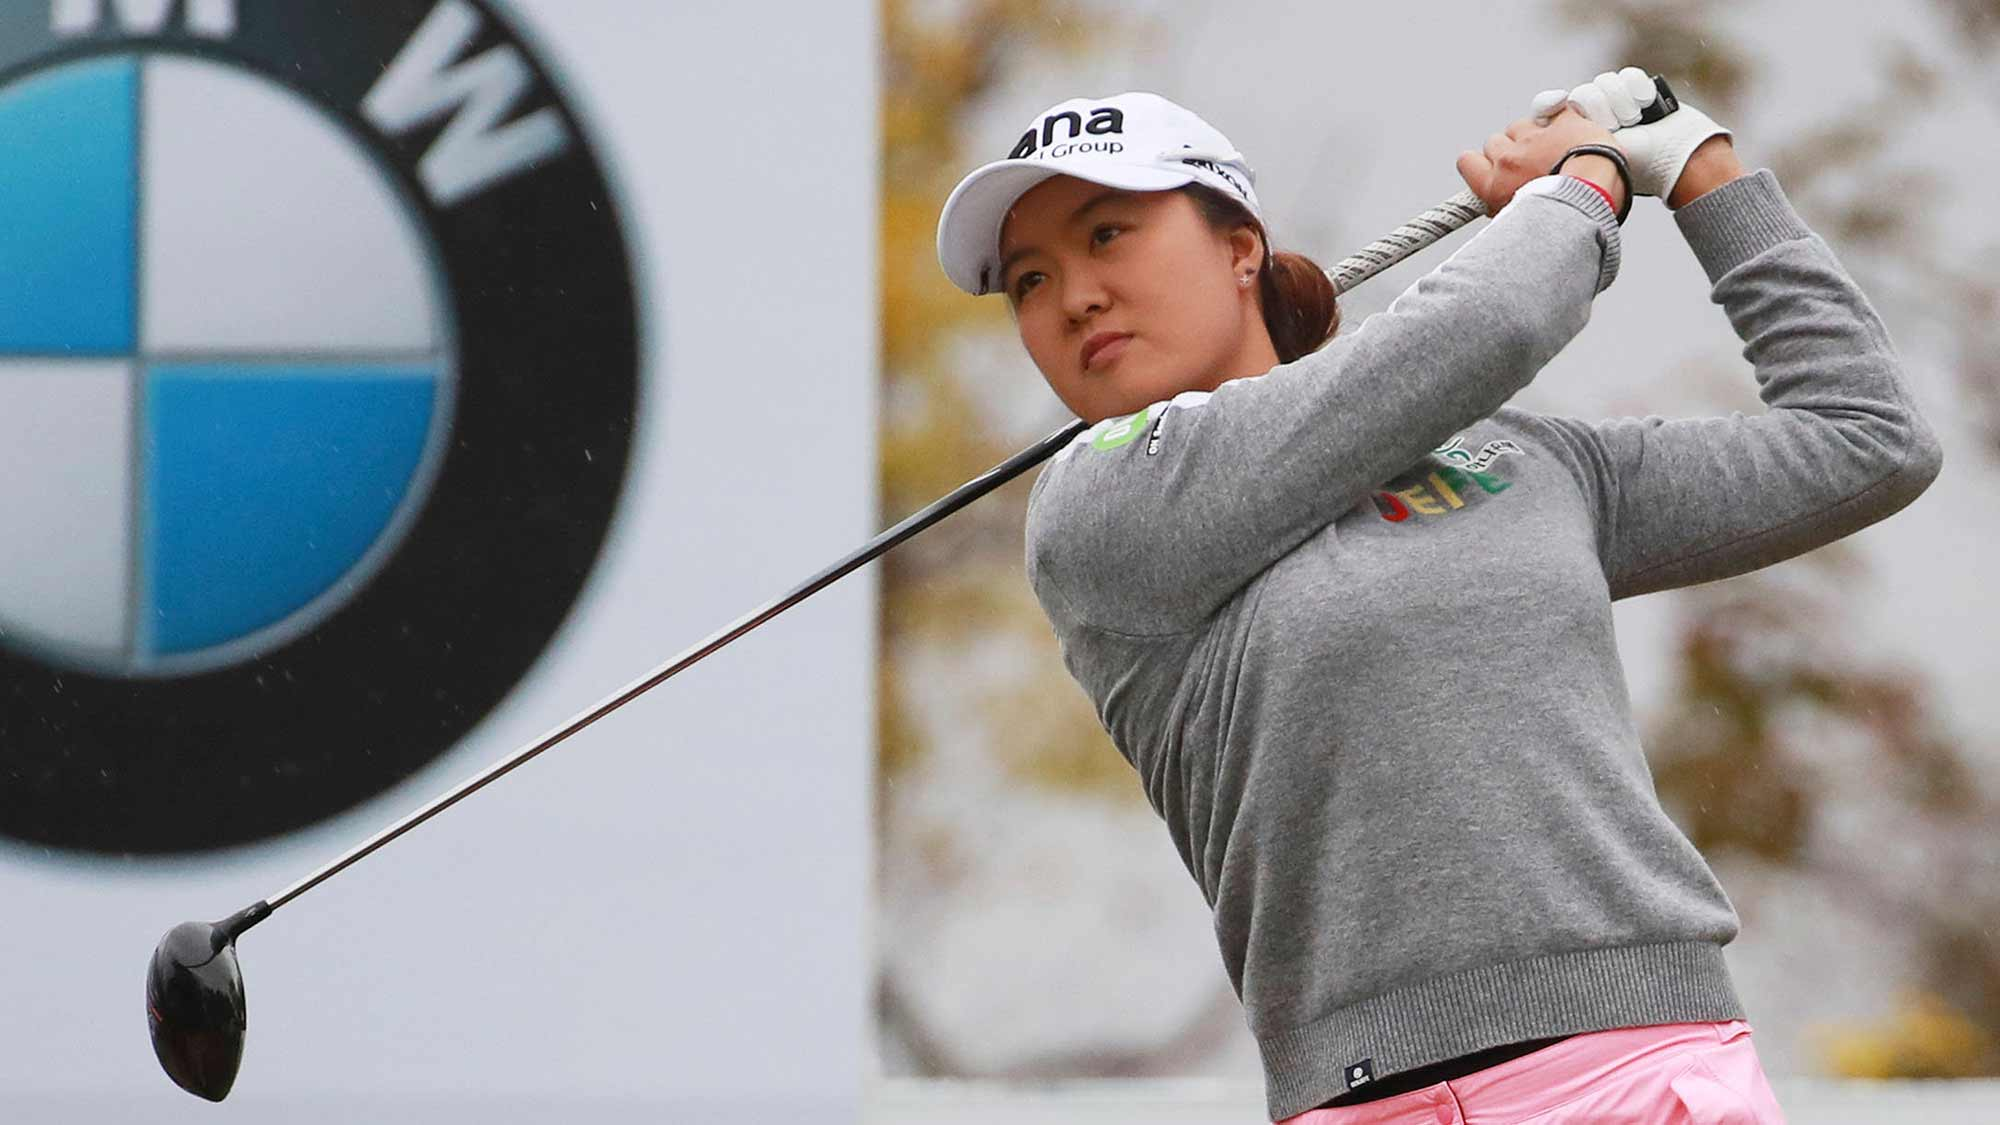 Australia's Minjee Lee watches her shot on the 10th hole during the first round of the LPGA tournament at LPGA International Busan in Busan, South Korea, Thursday, Oct. 24, 2019